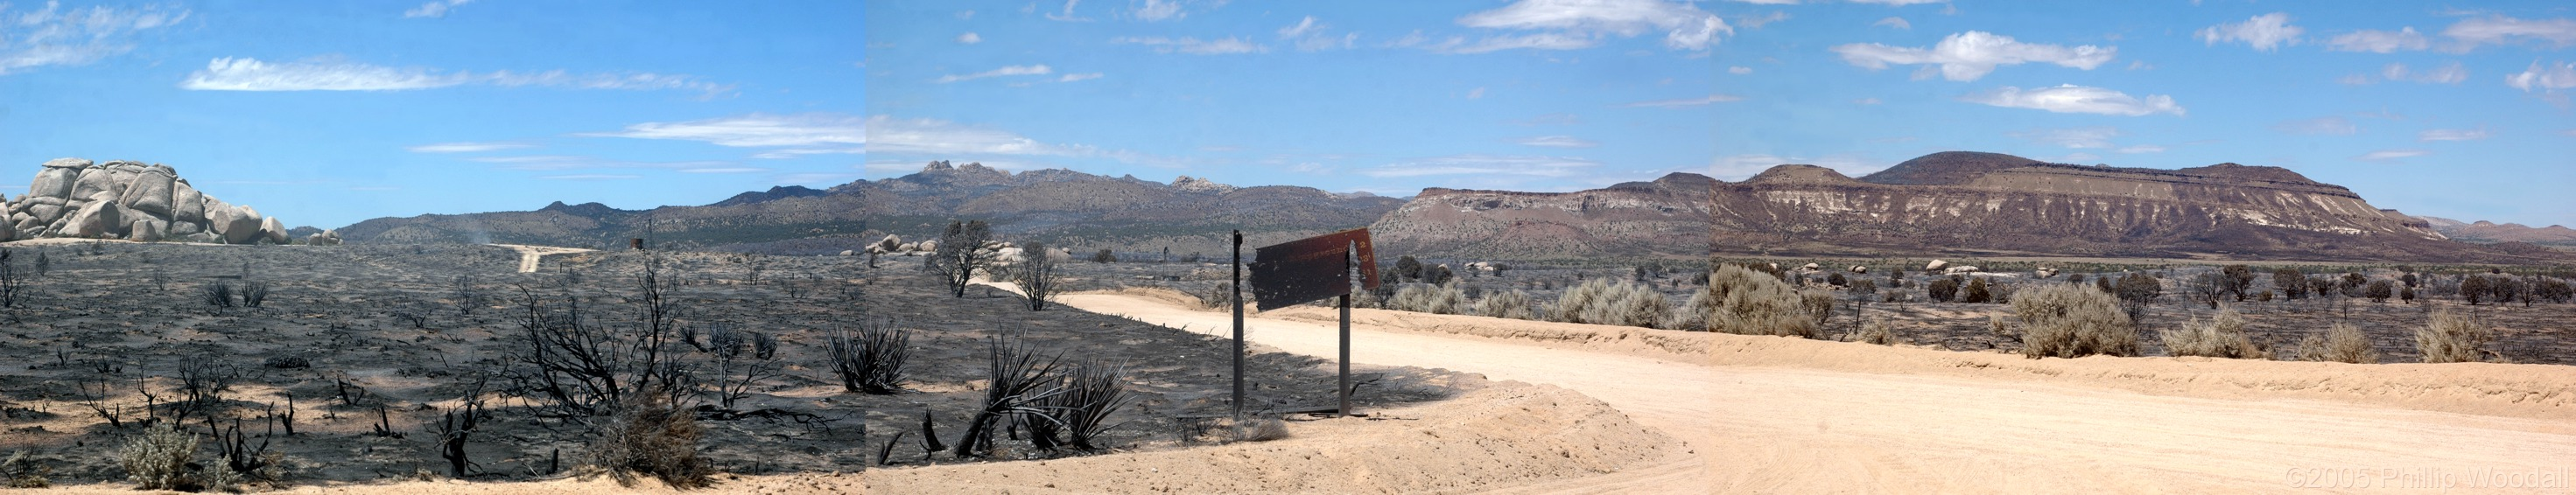 Round Valley, Hackberry Fire Complex, Mojave National Preserve